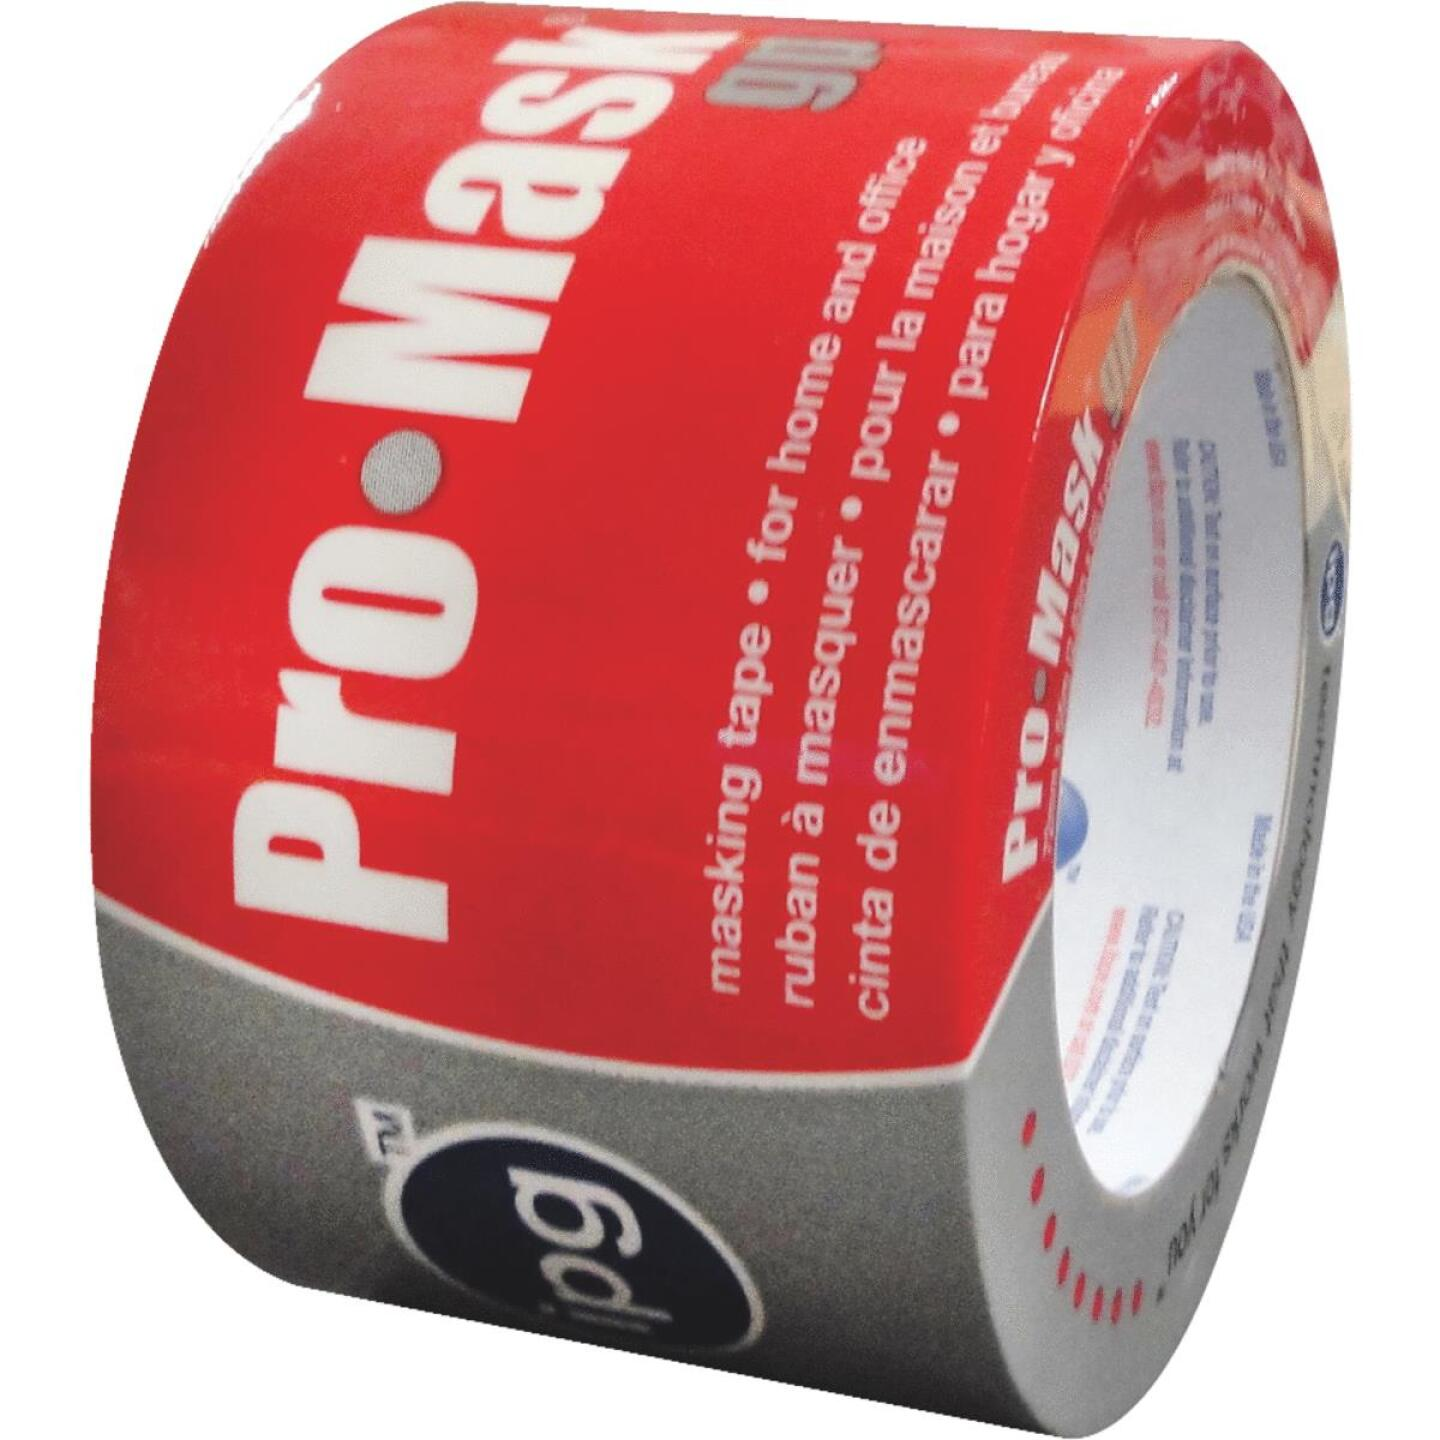 IPG PG500 2.83 In. x 60 Yd. General-Purpose Masking Tape Image 1